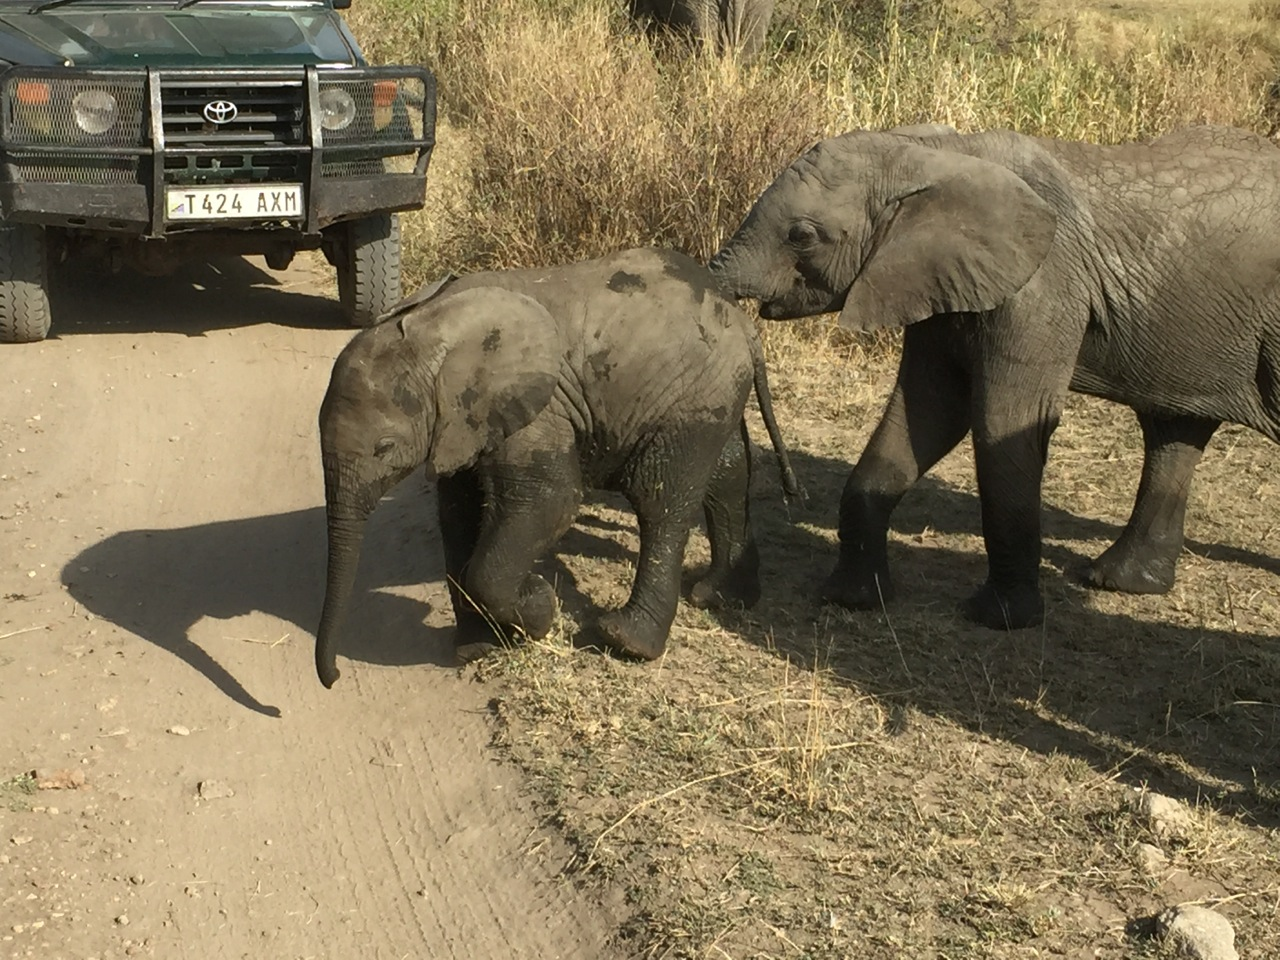 Elephants cross the roads in Serengeti National Park whenever they please, ignoring or at times insisting that photo safari vehicles get out of the way. They never get an argument!